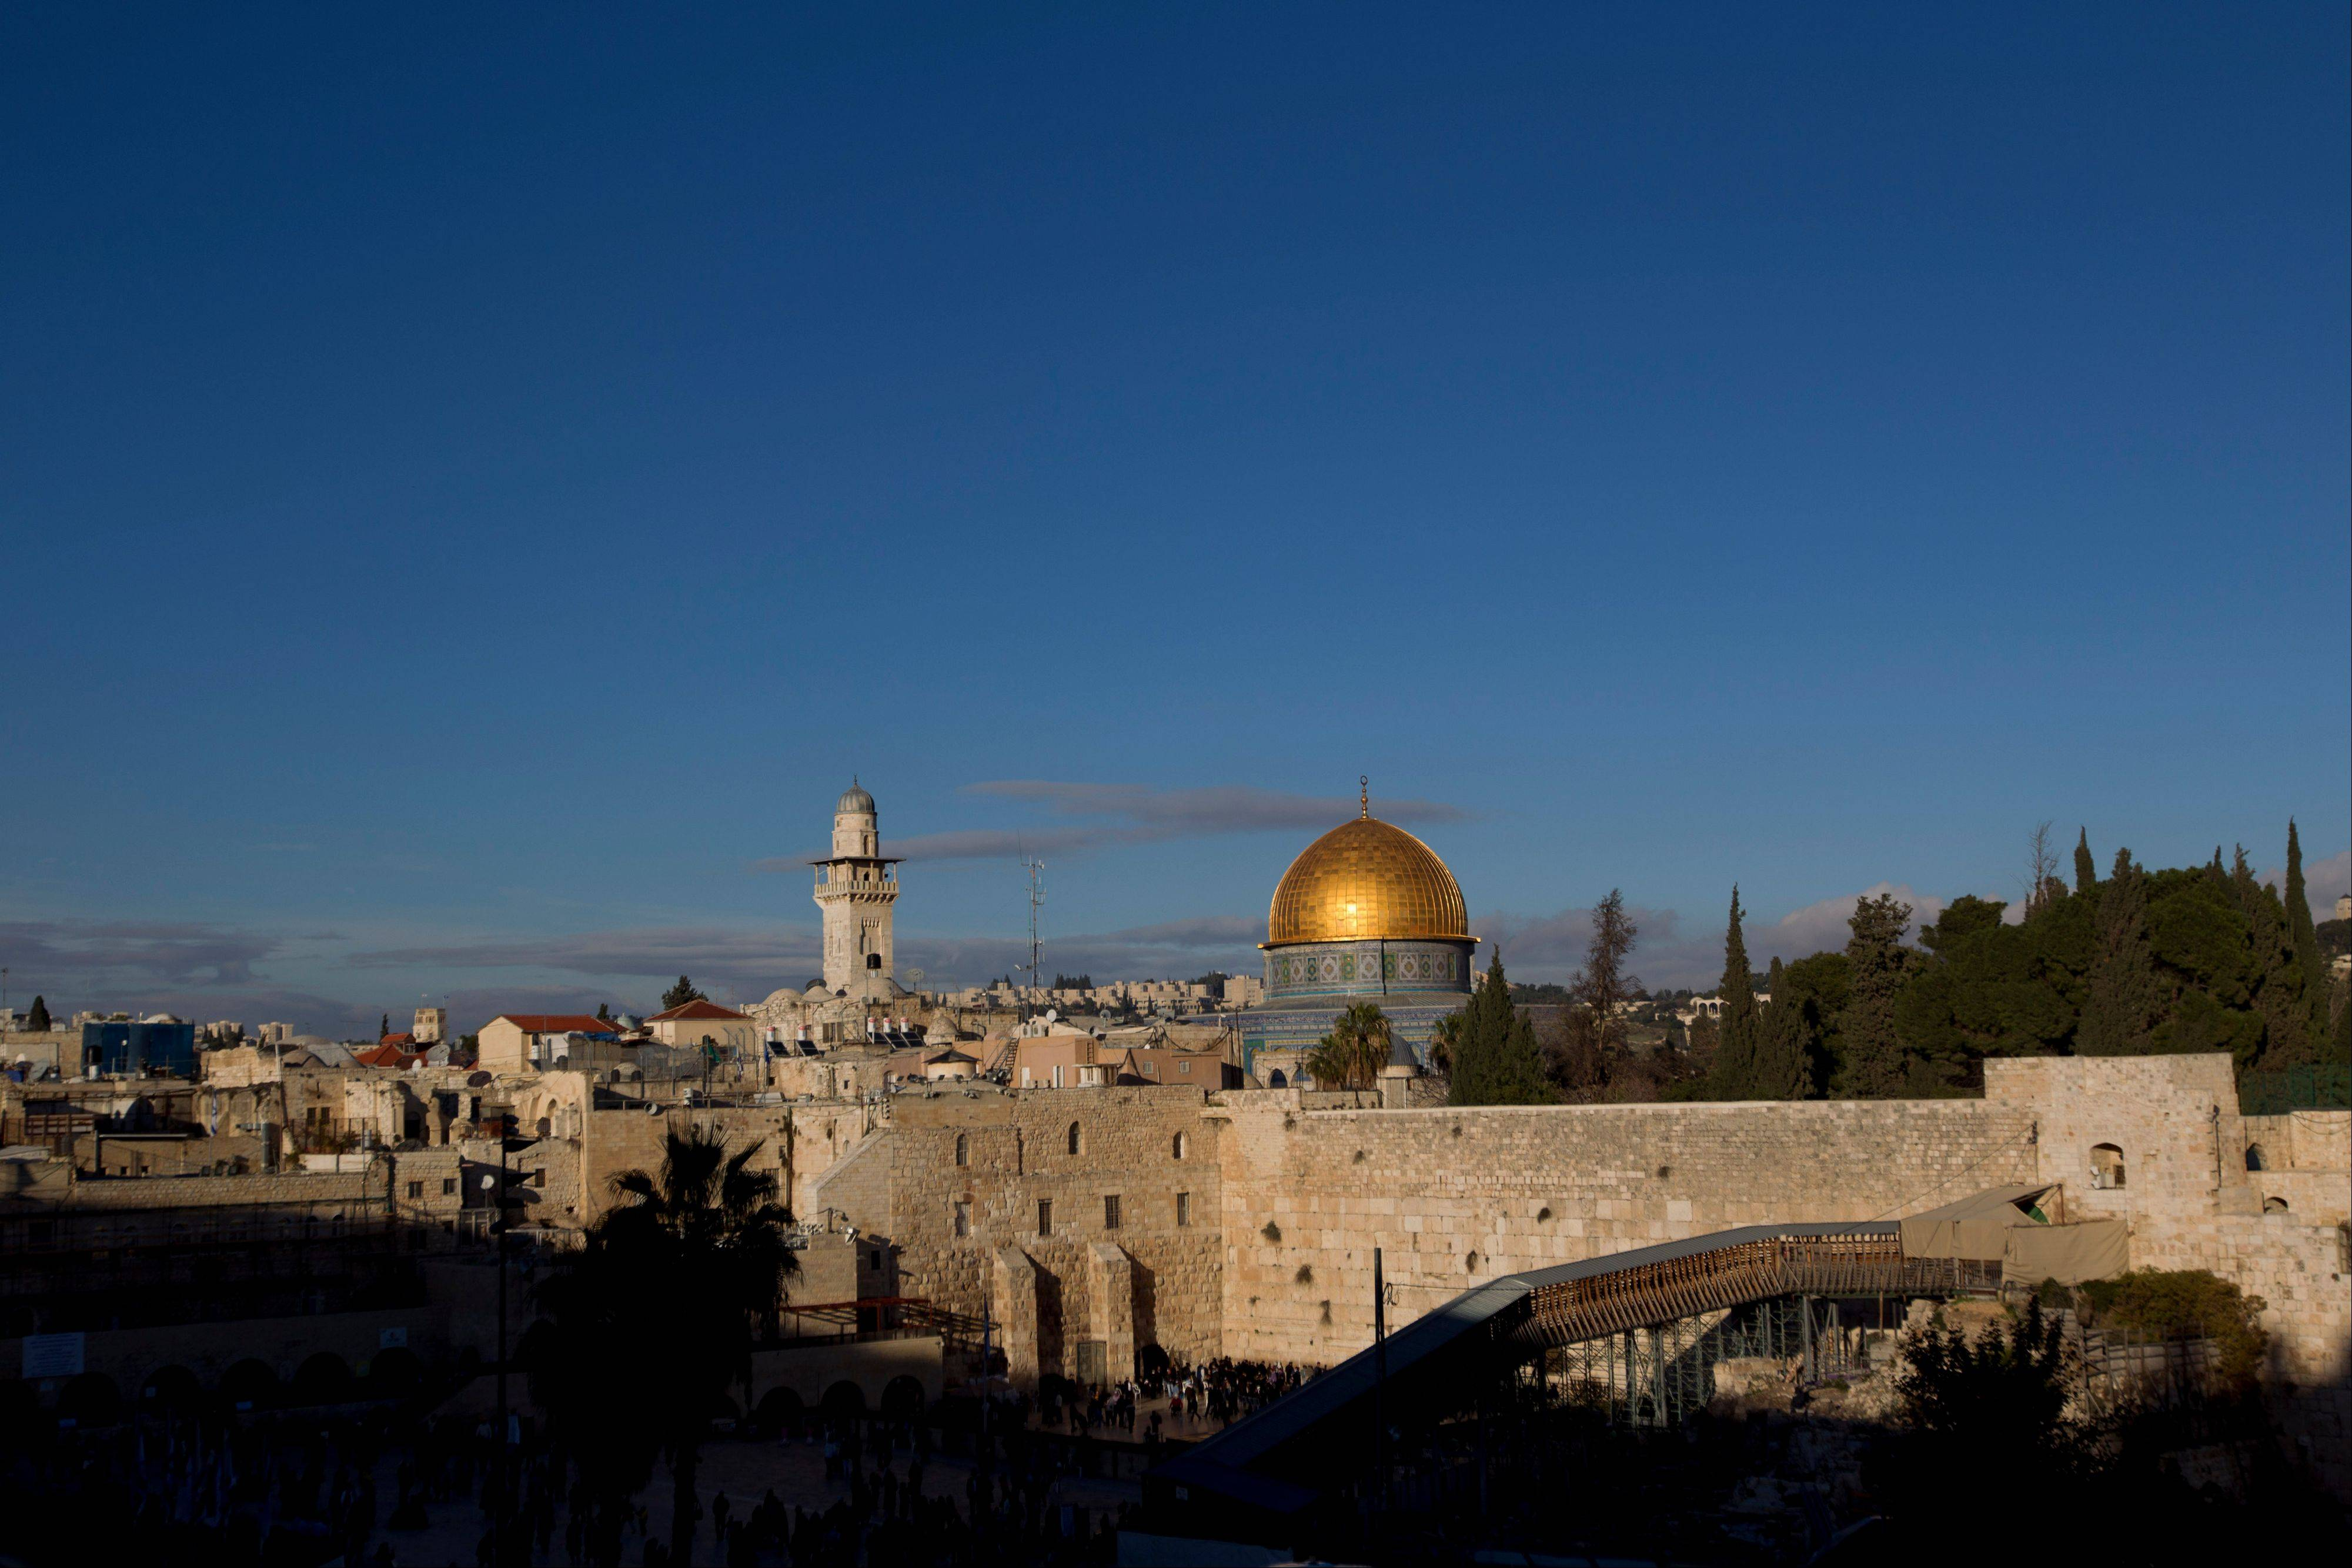 The Western Wall and golden Dome of the Rock in Jerusalem's Old City.